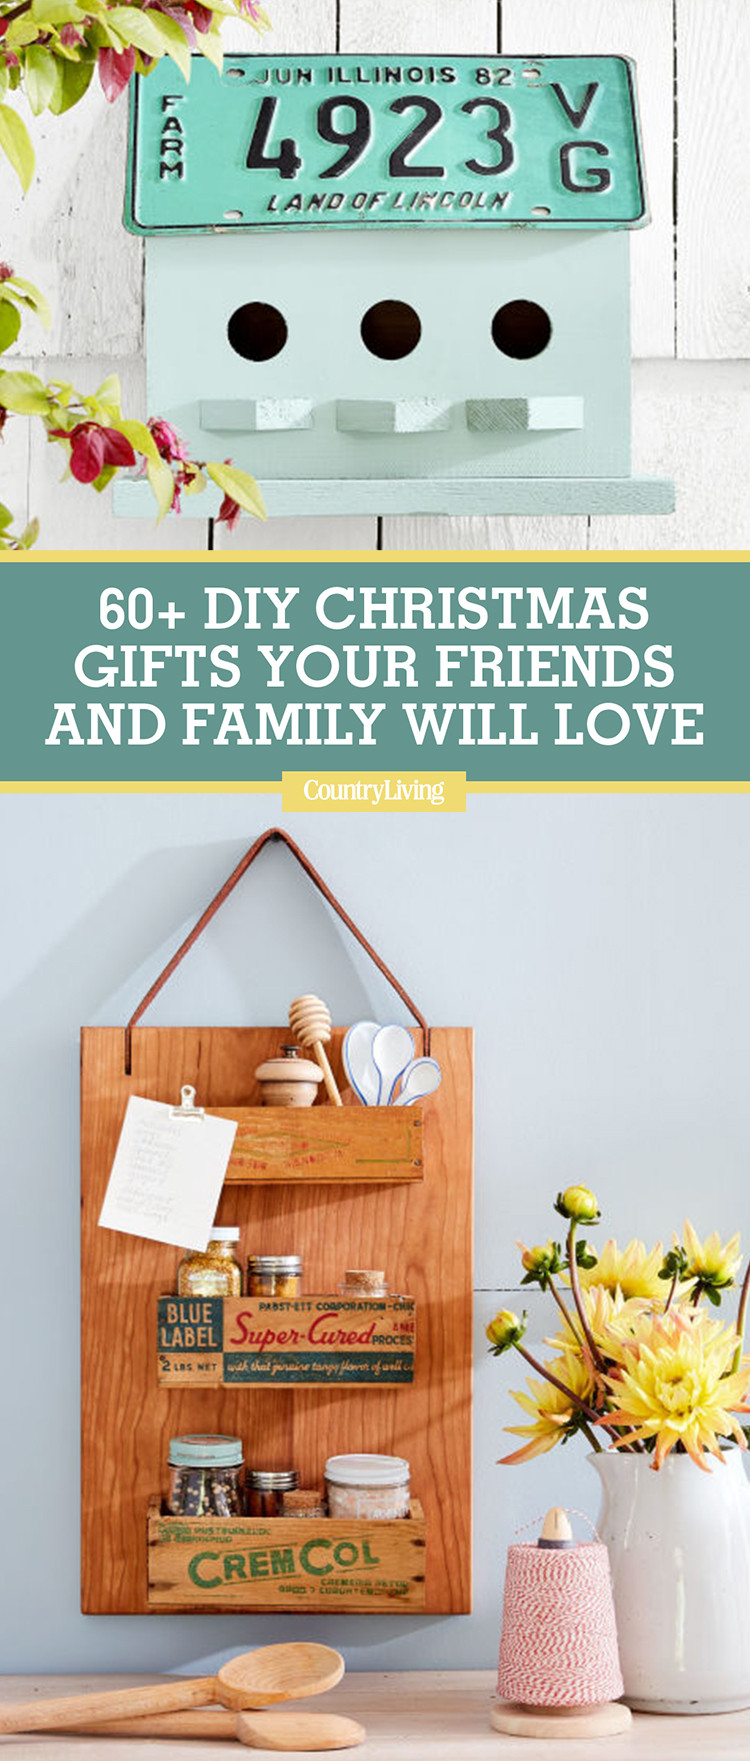 Best ideas about DIY Gifts For Family . Save or Pin 60 DIY Homemade Christmas Gifts Craft Ideas for Now.